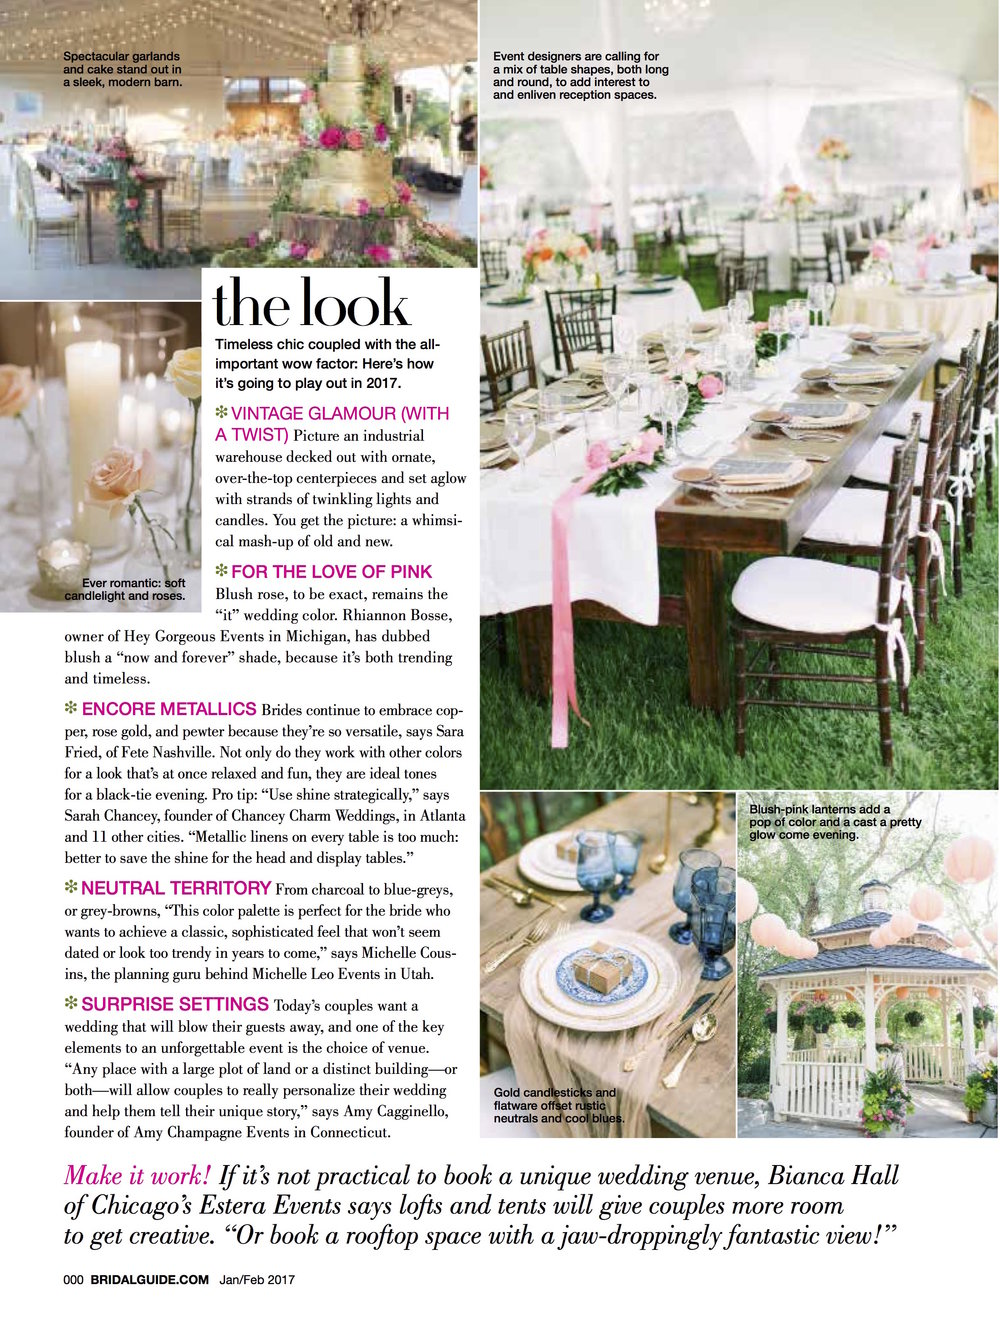 Bridal Guide 2017 Wedding Trend Report featuring Fte Nashville